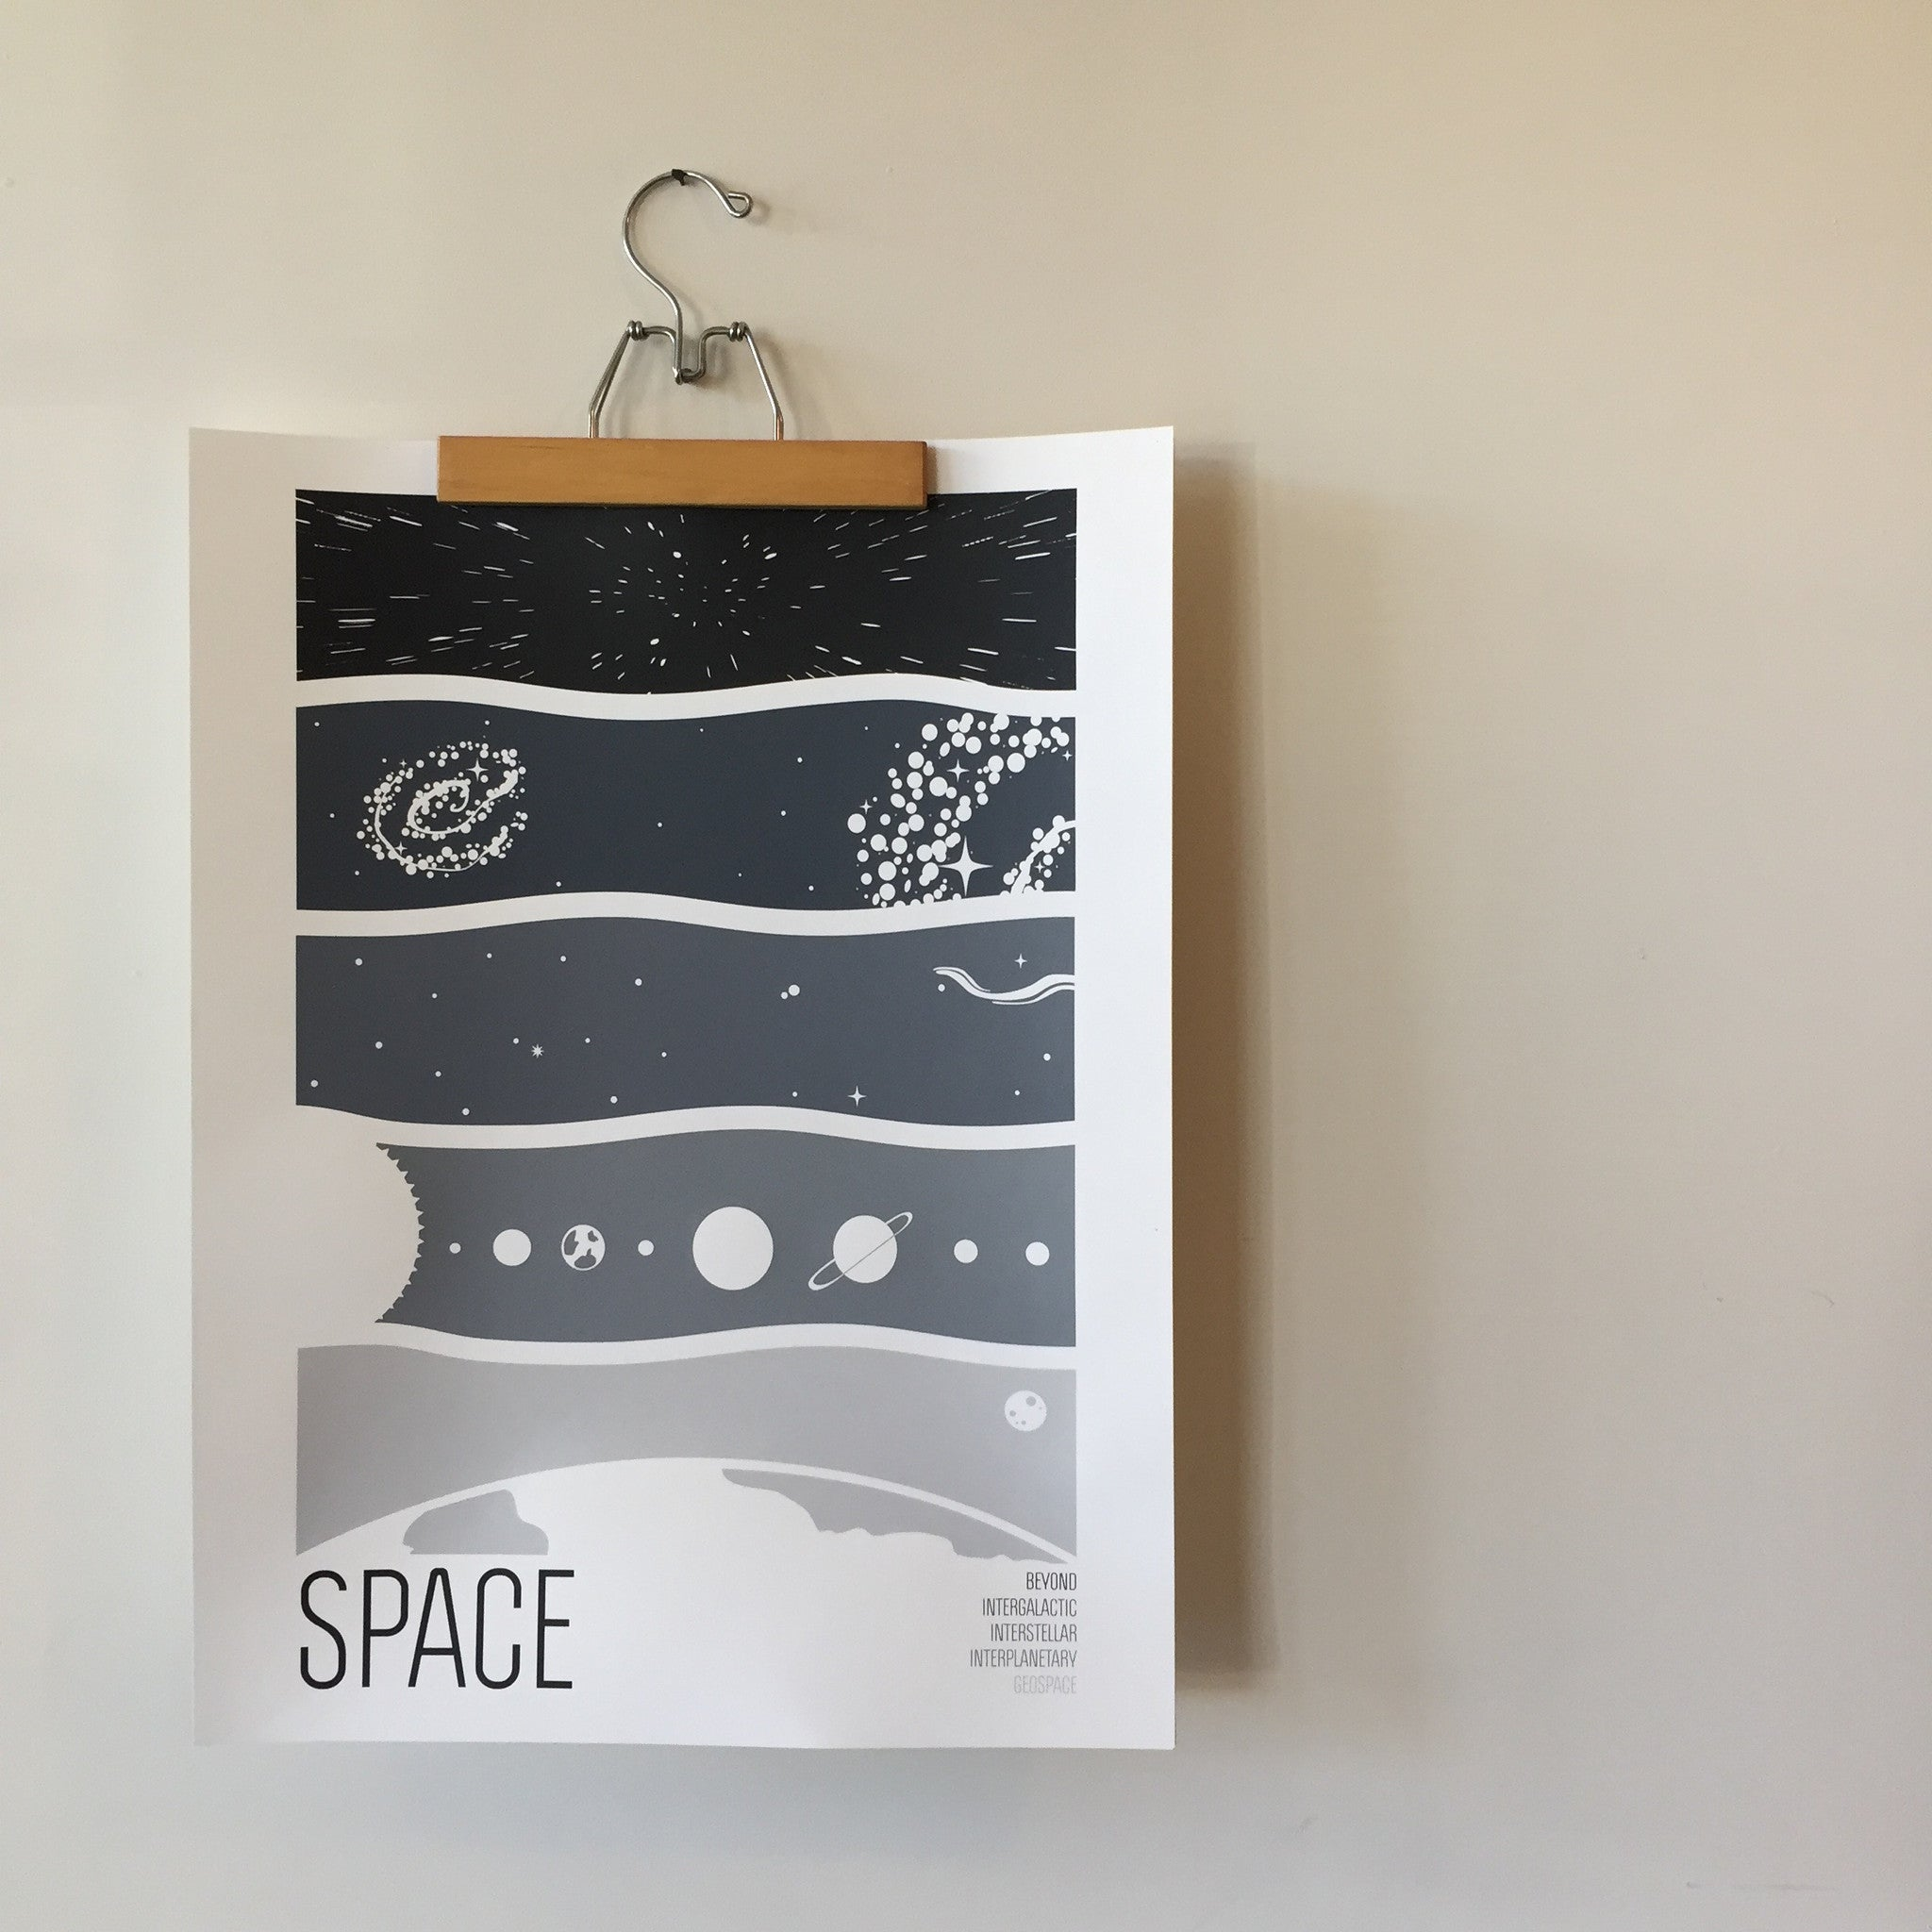 SPACE Screenprint by Brainstorm